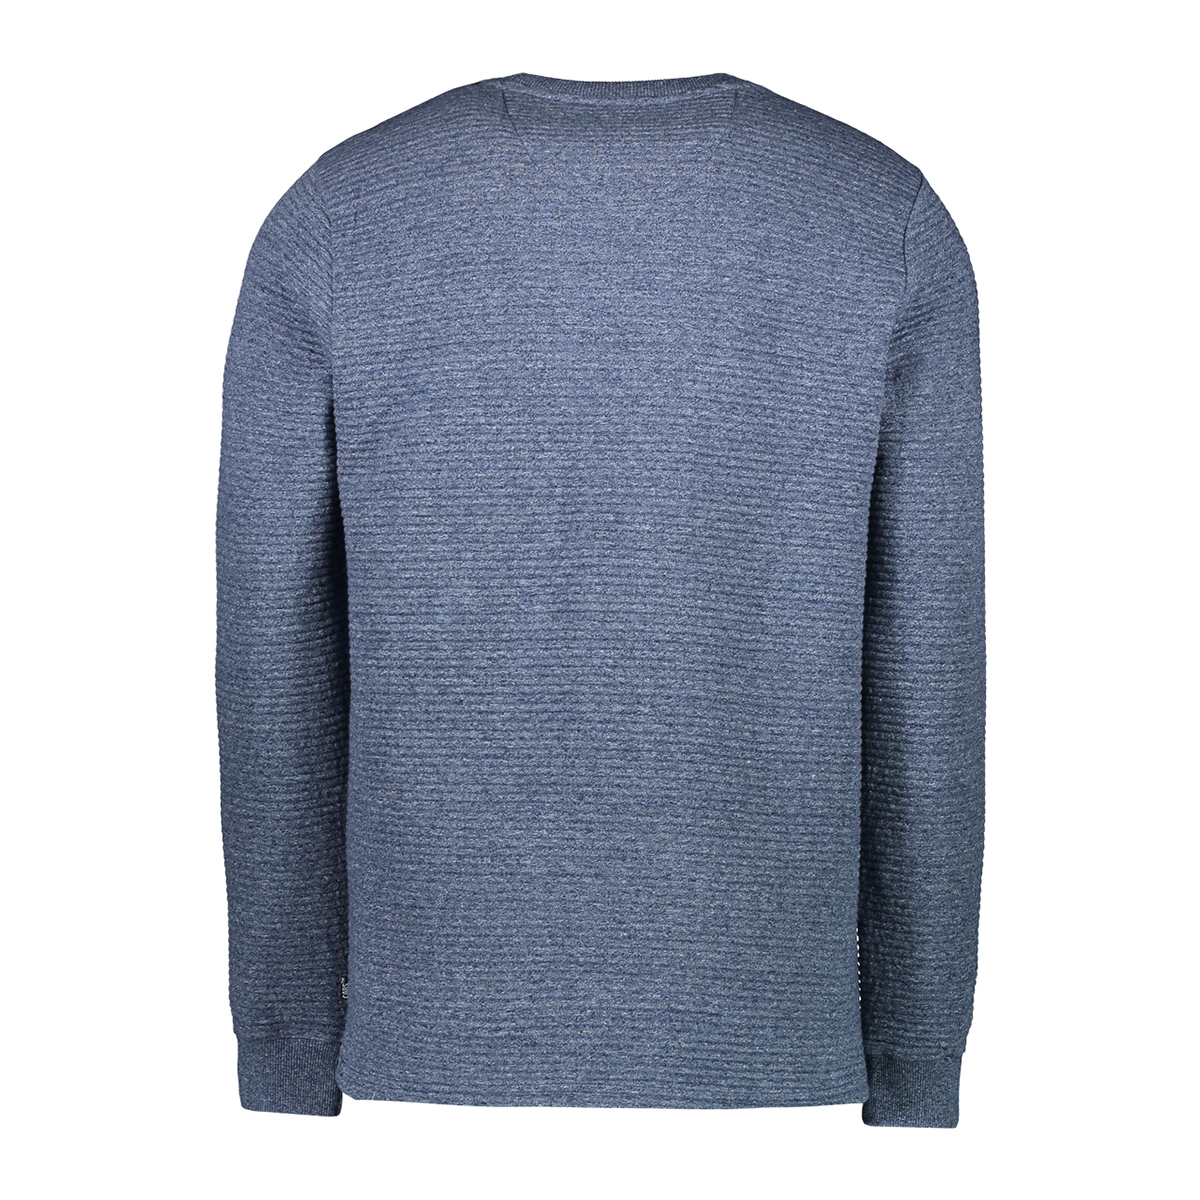 sonic sw 4011081 cars sweater navy melee